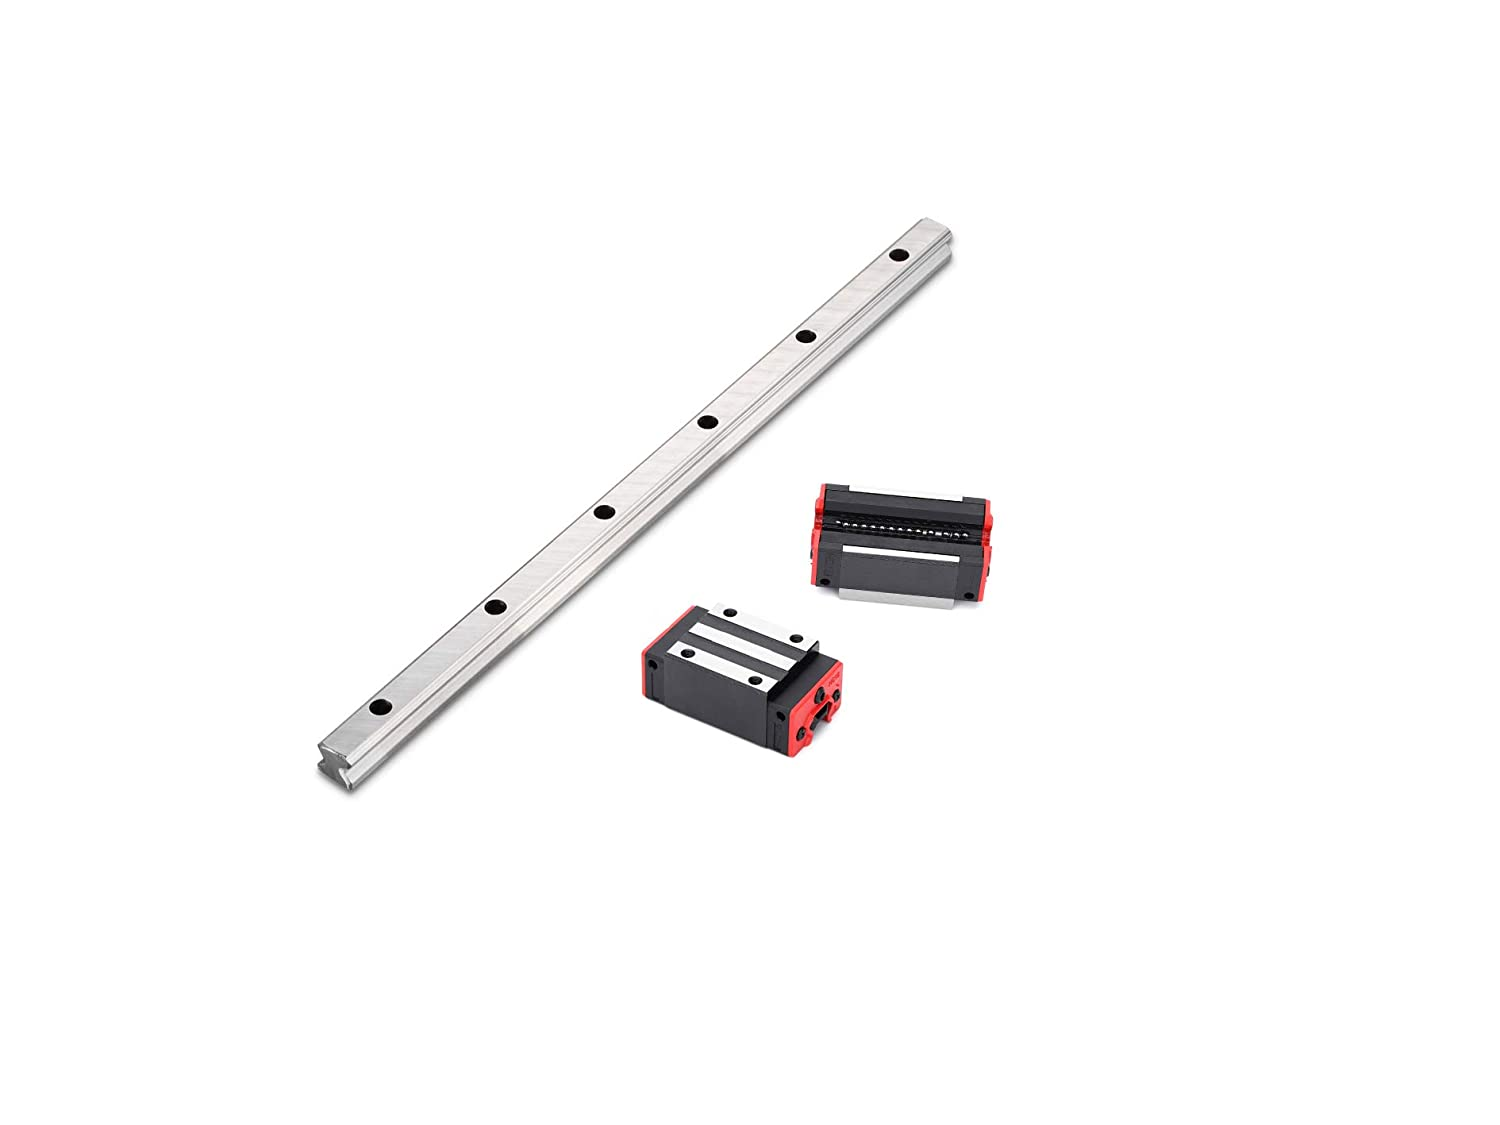 Surprecision Linear Motion Rail with Sliders HSR35 980mm CR